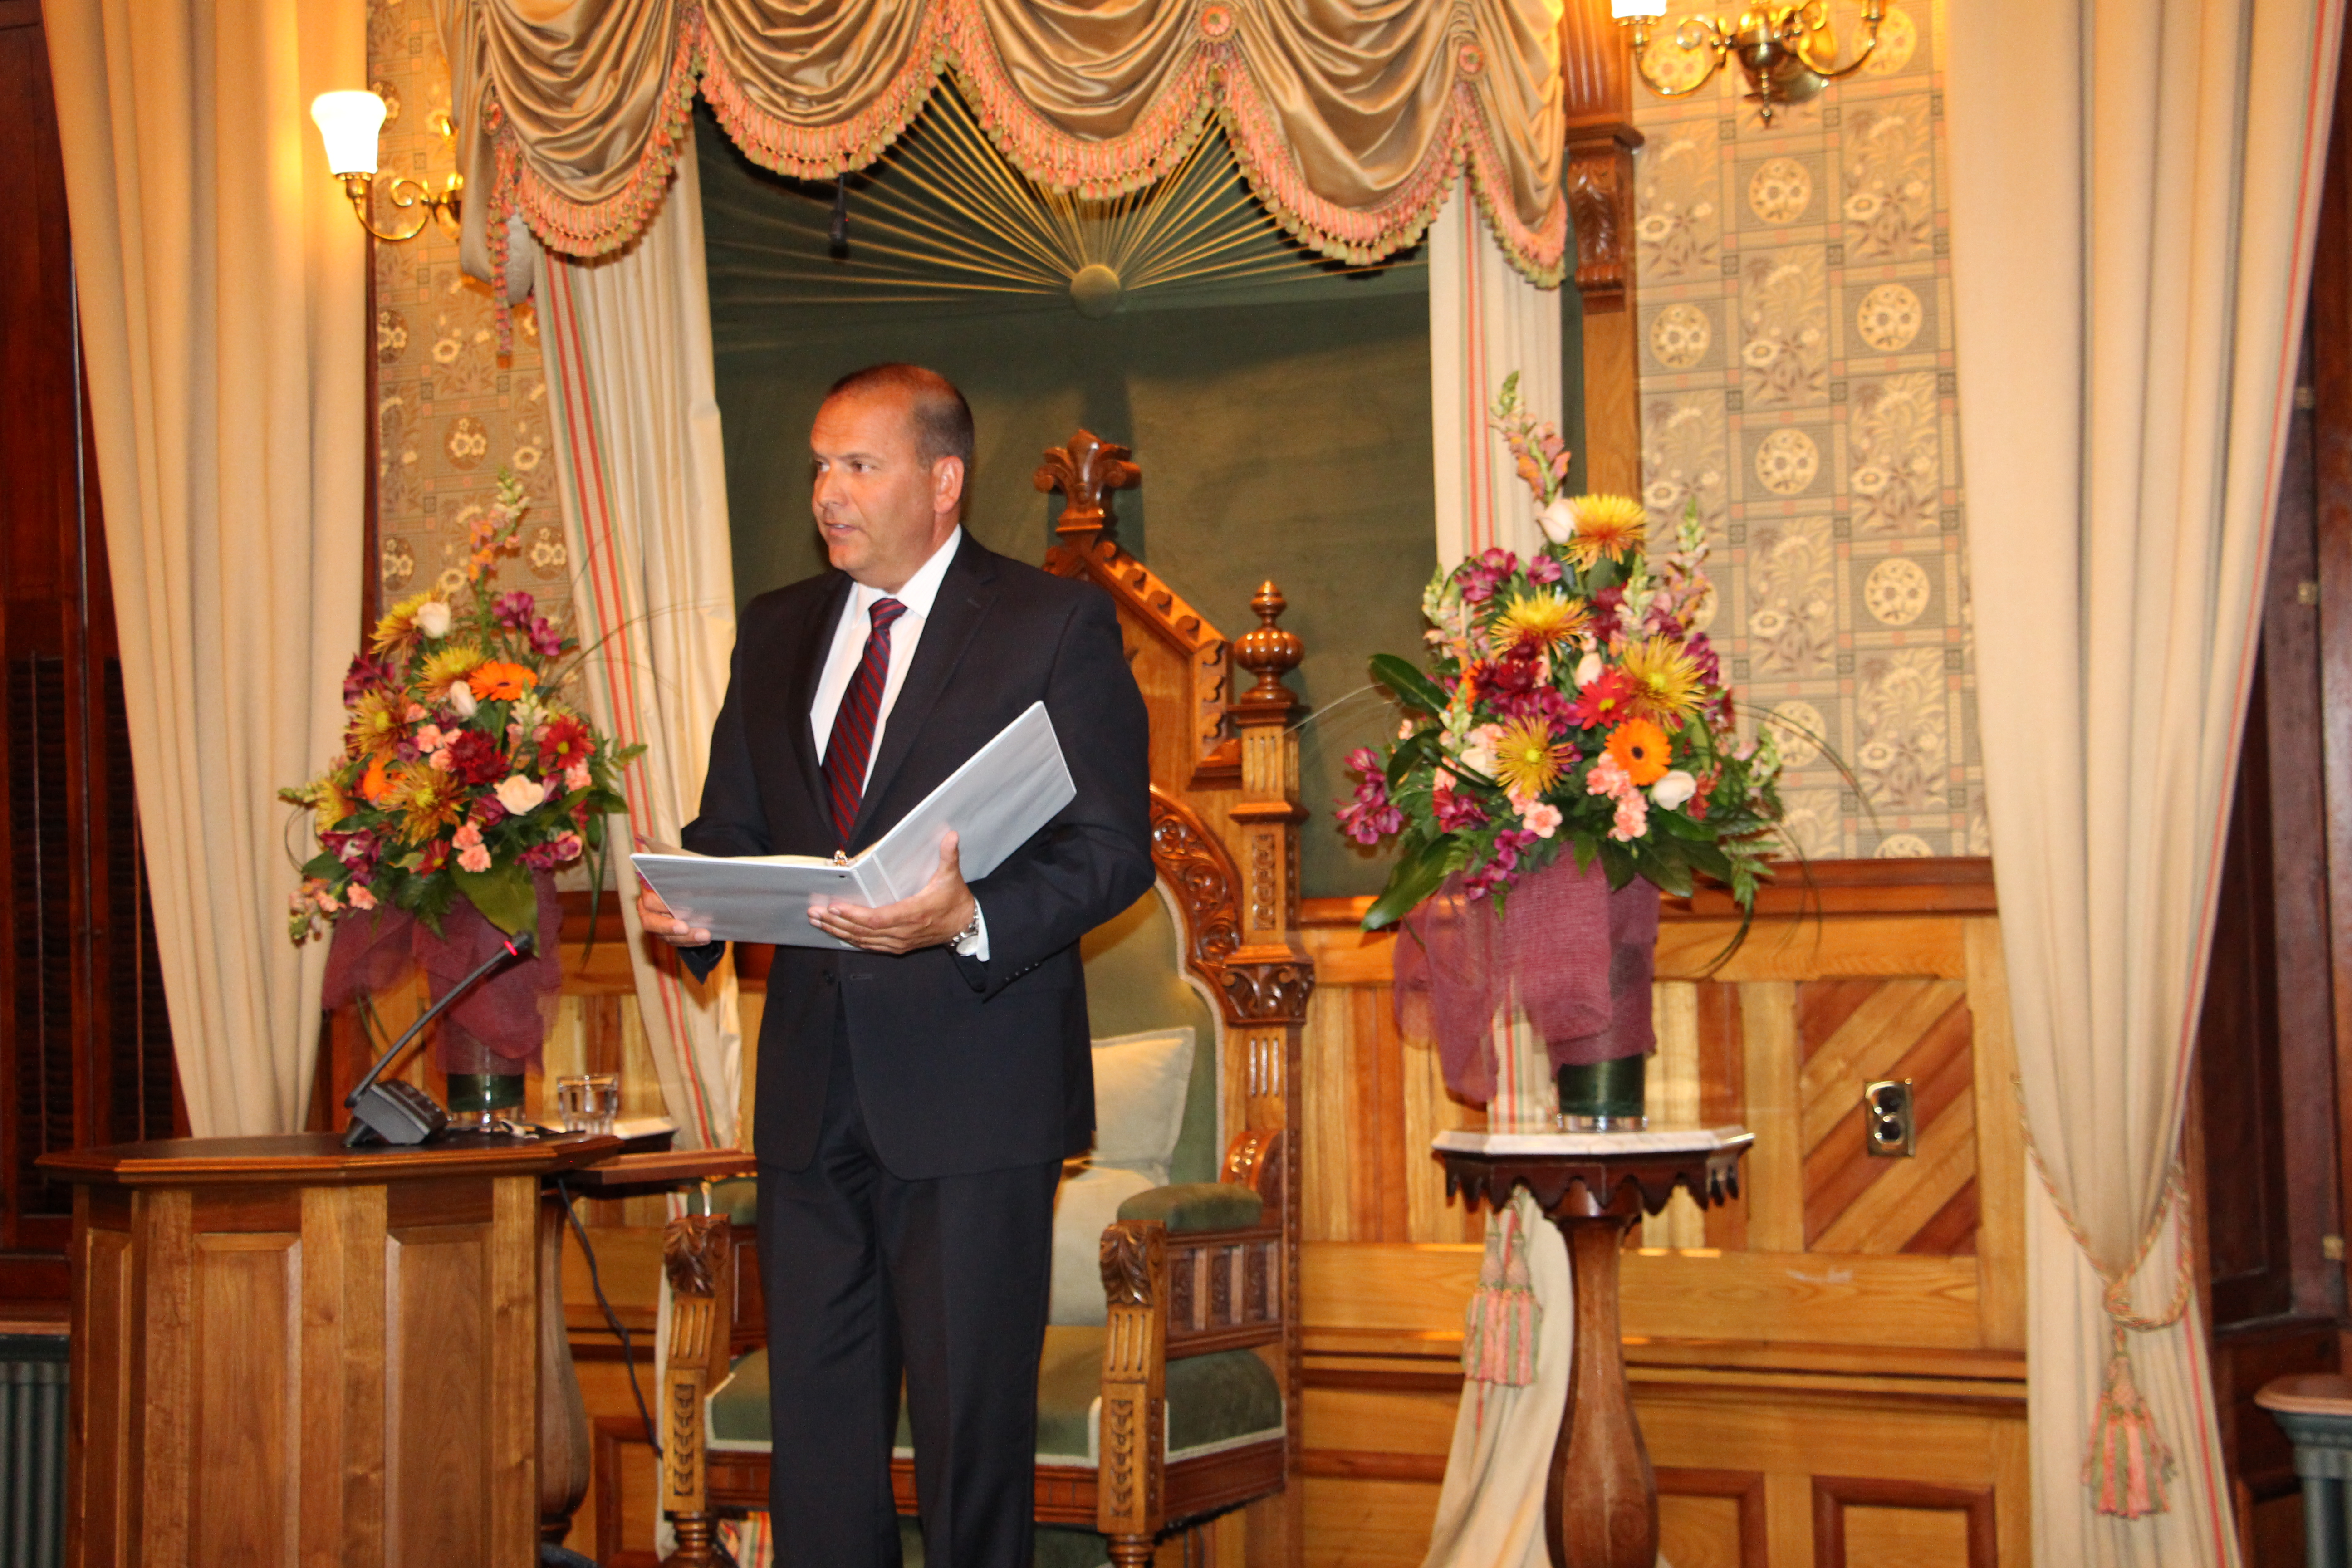 Collins elected as Speaker of the legislative assembly, MLAs sworn in